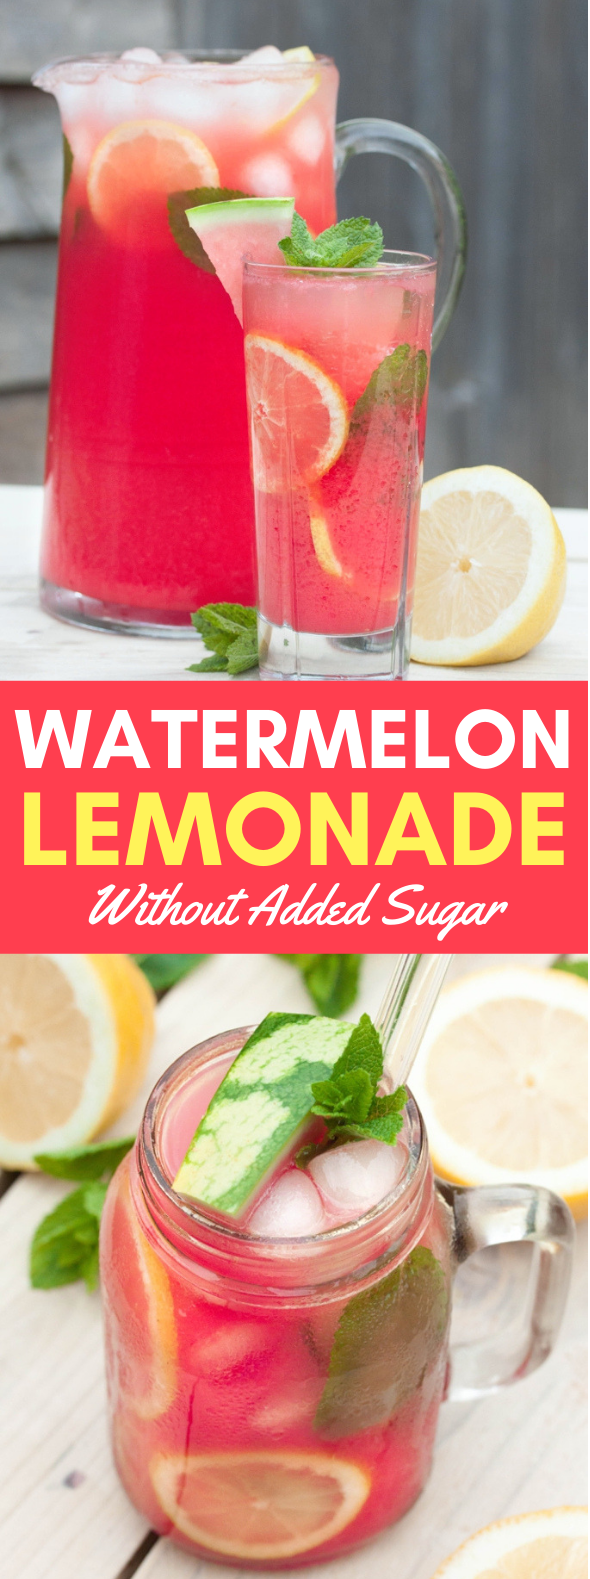 WATERMELON LEMONADE WITHOUT ADDED SUGAR #drinks #juices